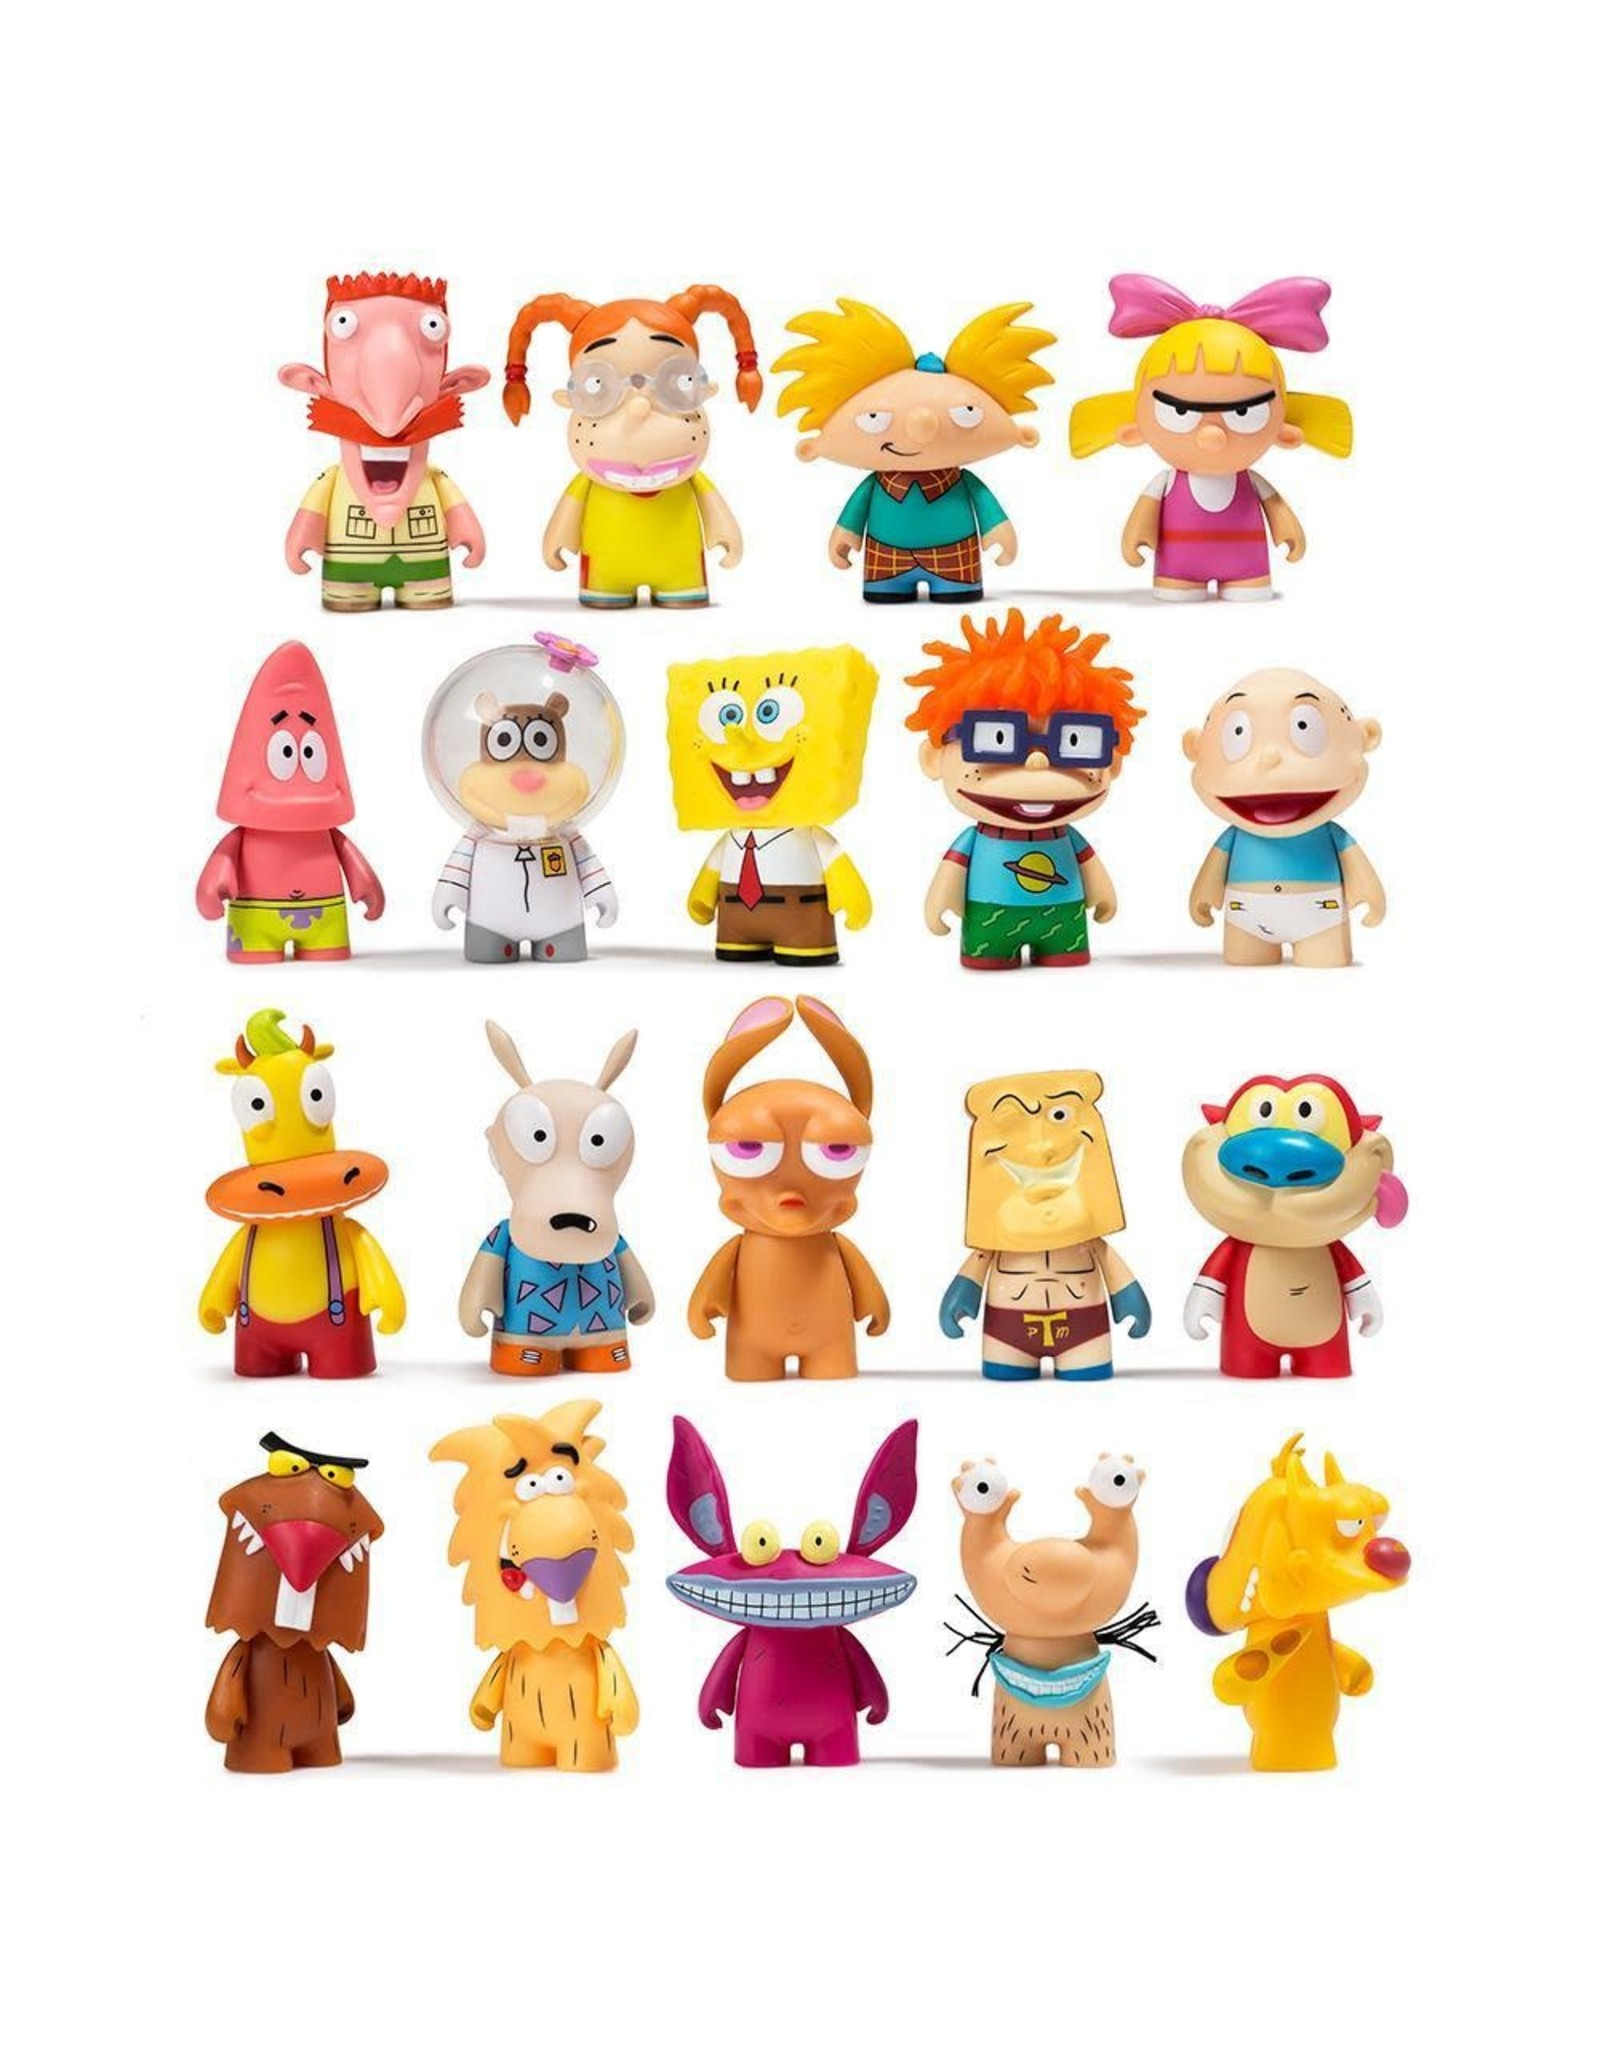 Big Bang Nickelodeon : nickelodeon, NICKELODEON, BLIND, FIGURES, KIDROBOT, SERIES